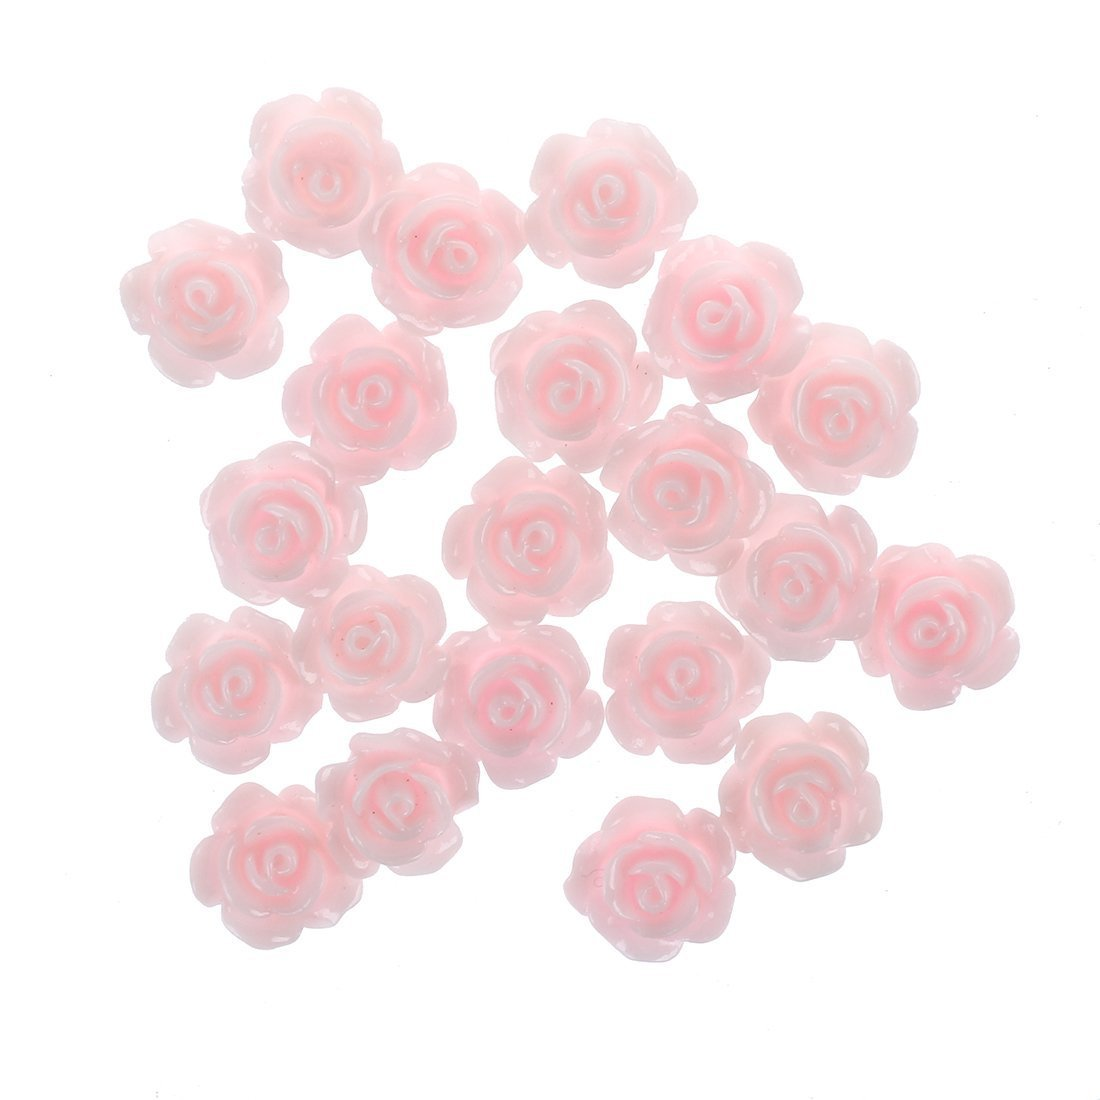 SODIAL(R) 20pcs 3D Pink Little Rose Flower with Rhinestones Nail Art Decoration